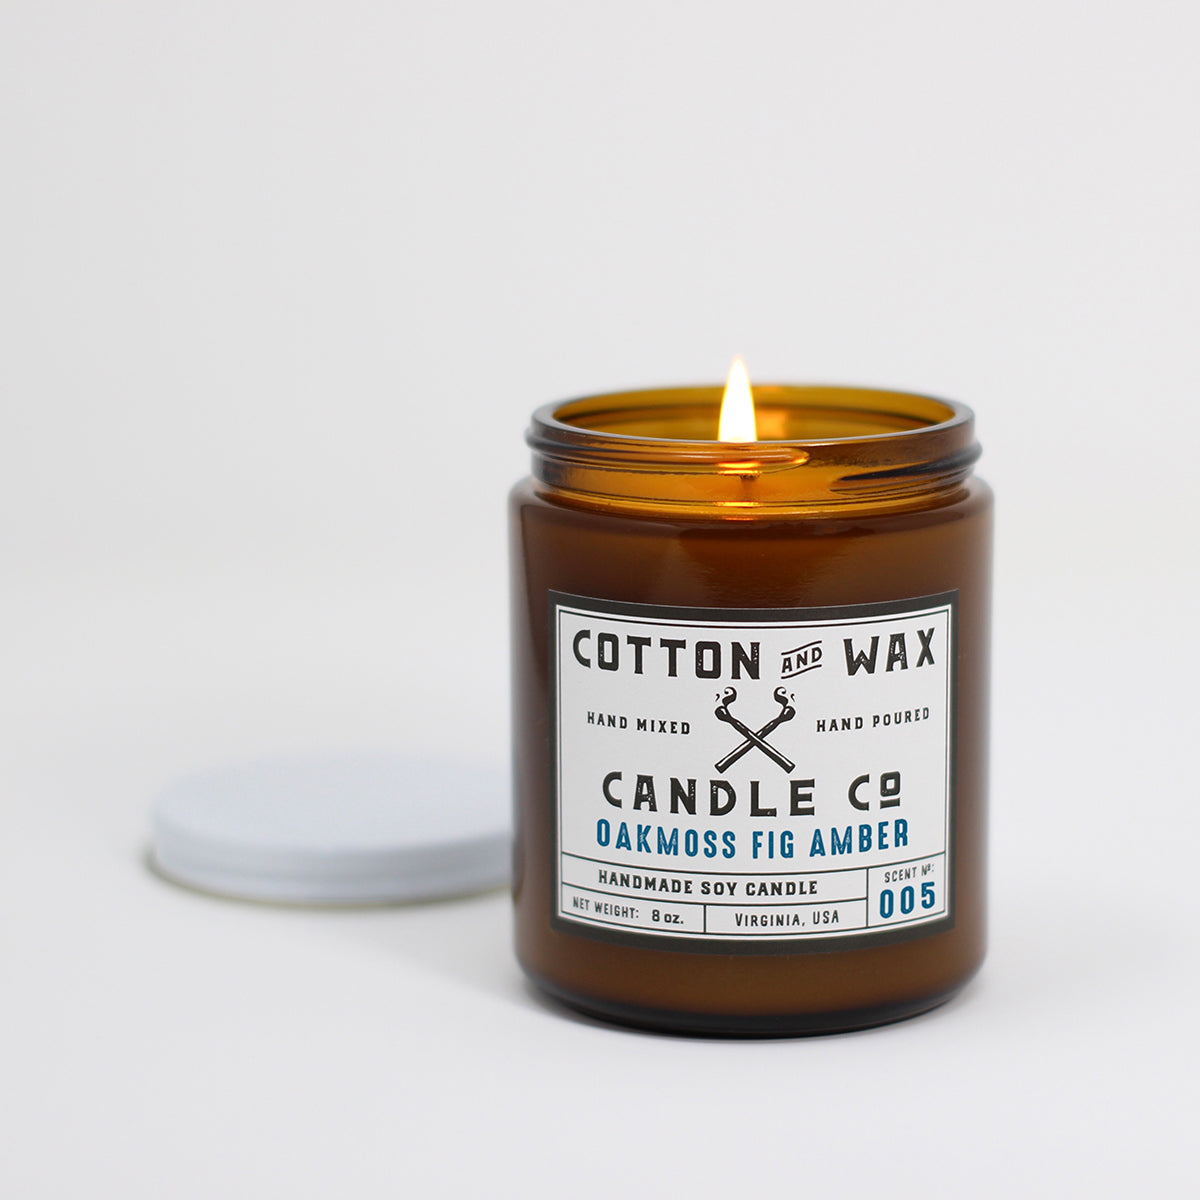 Cotton and Wax Candle Co. Oakmoss Fig Amber Handmade Scented Soy Candle